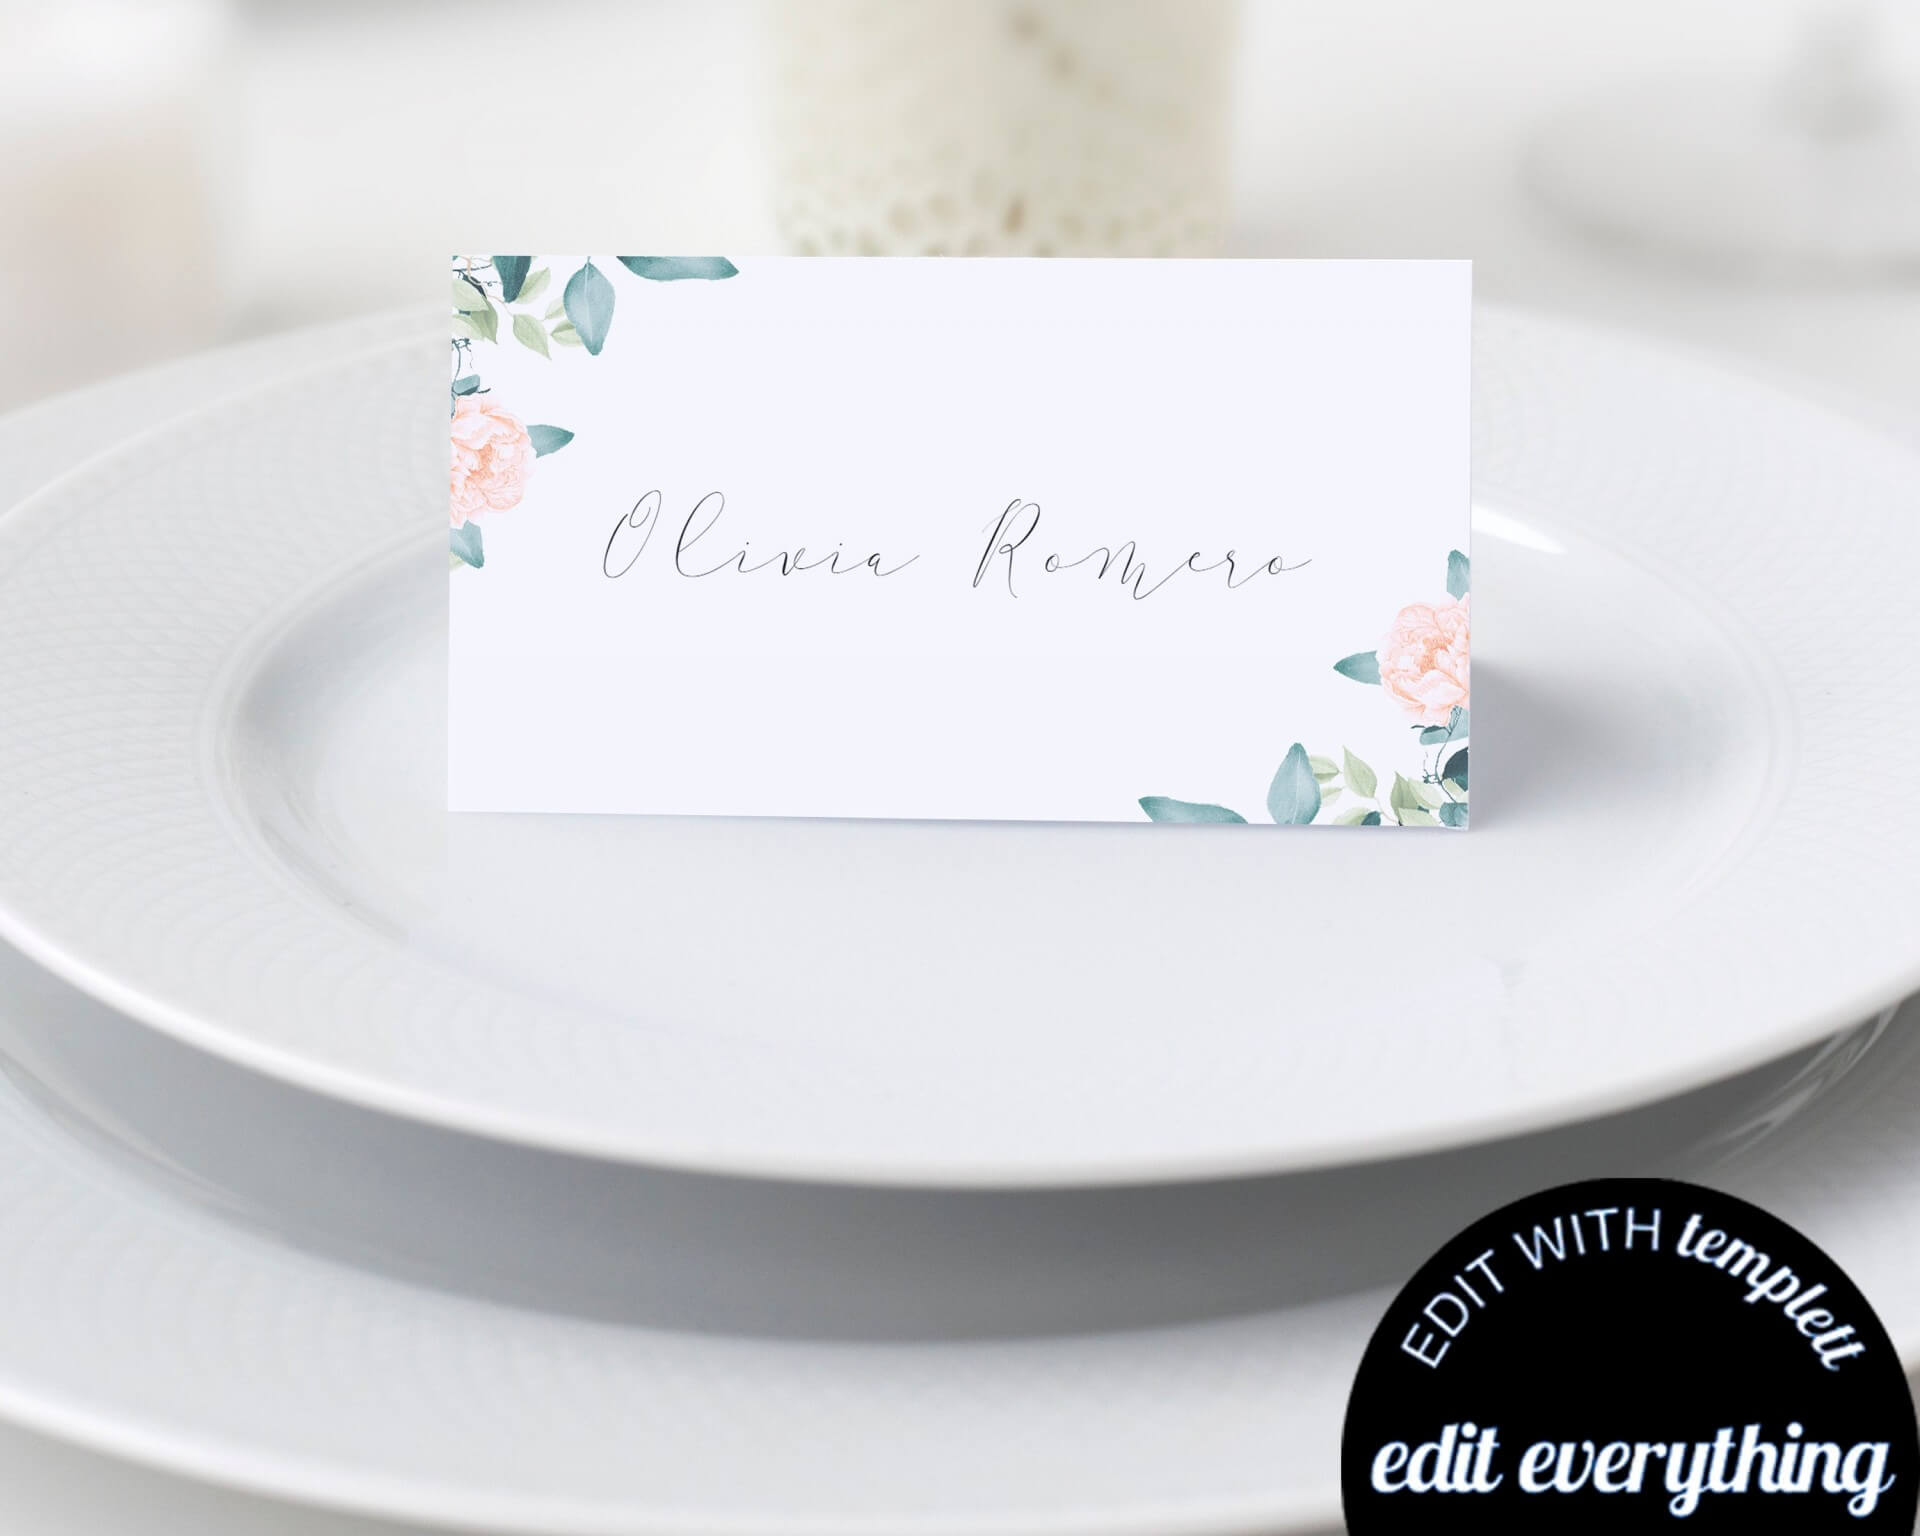 019 Template For Place Cards Il Fullxfull 1542140750 Dg3V With Regard To Place Card Template Free 6 Per Page